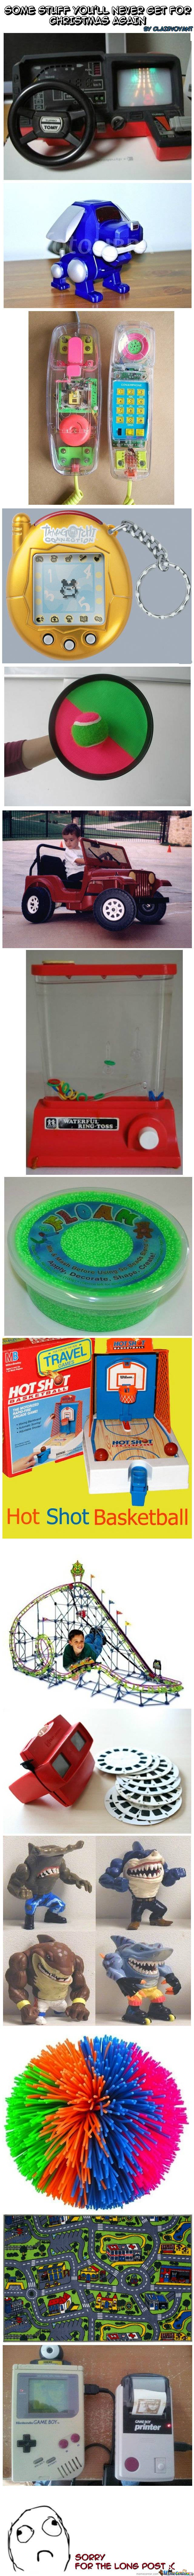 I wish I could still play with some of these toys...